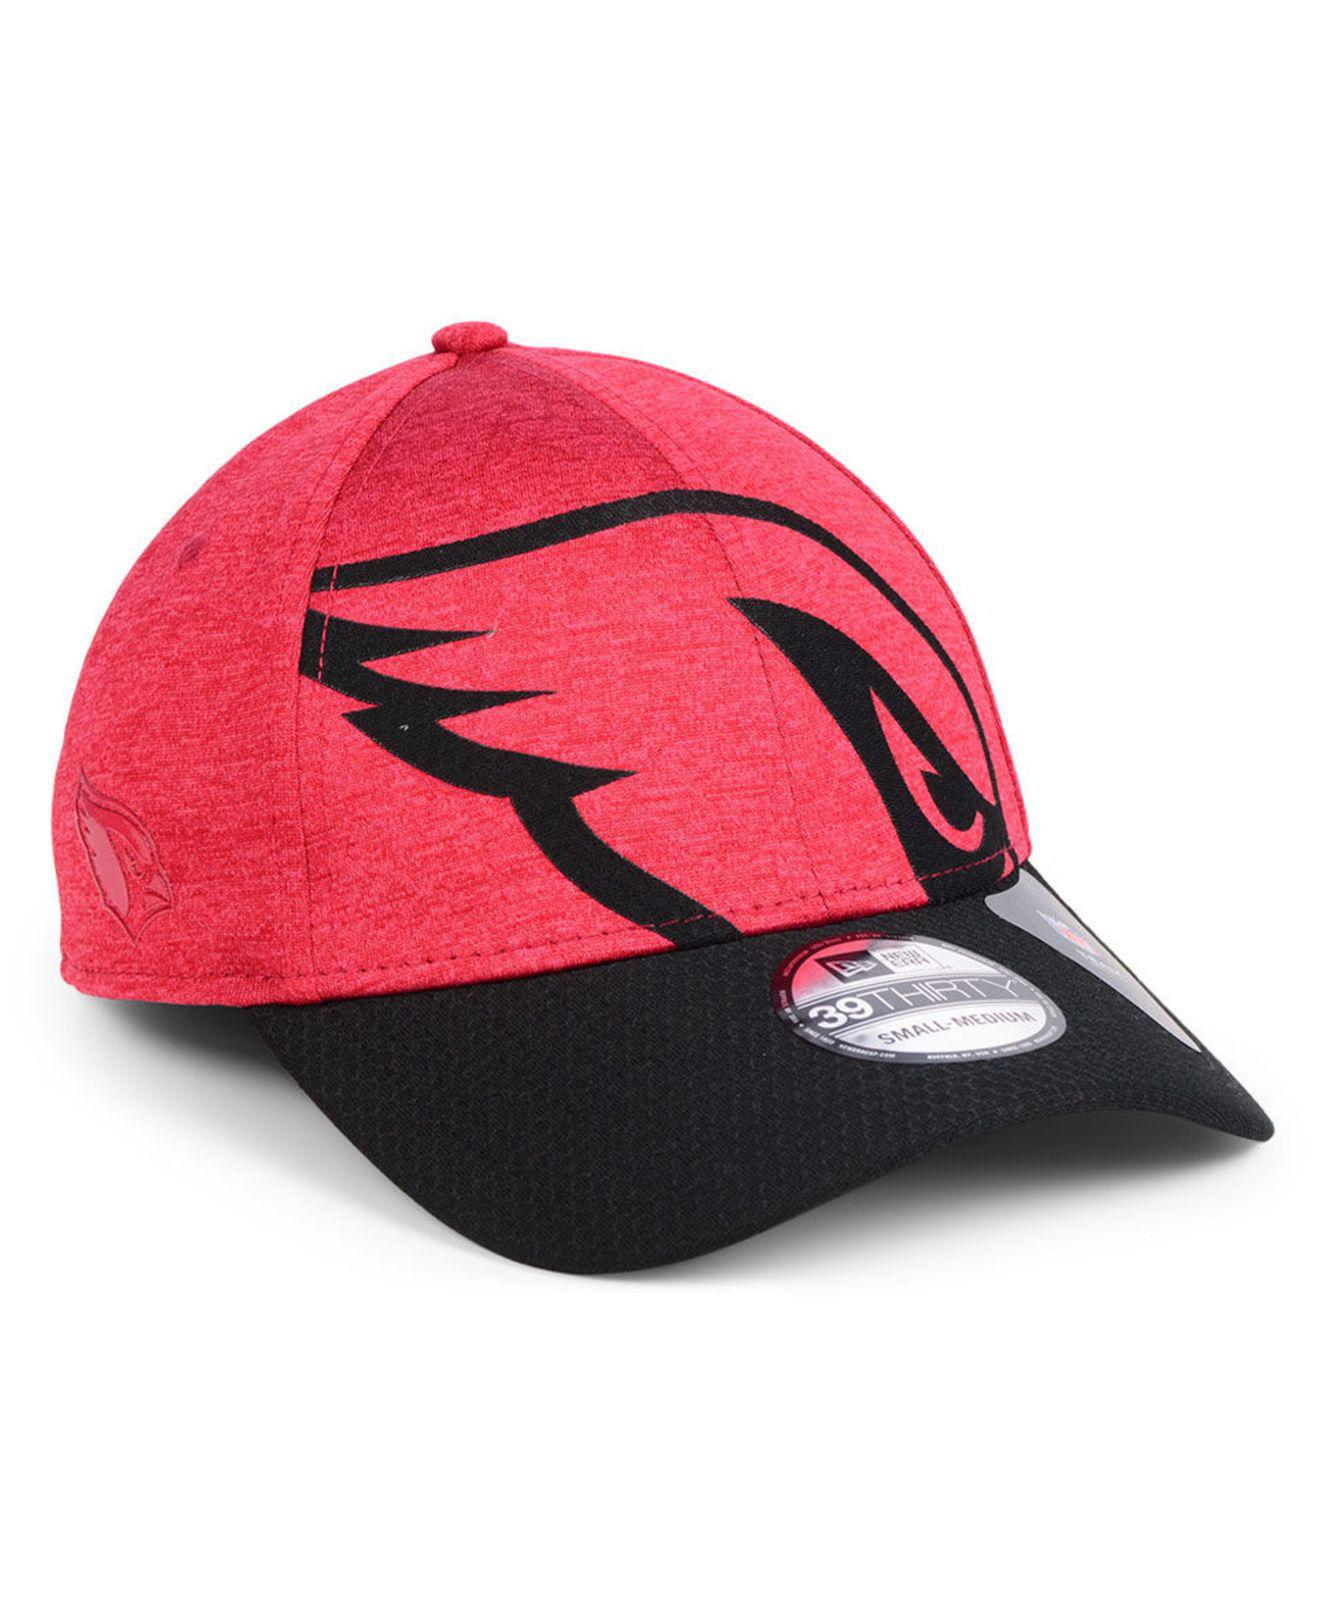 Lyst - Ktz Arizona Cardinals Oversized Laser Cut Logo 39thirty Cap ... 230b36db5